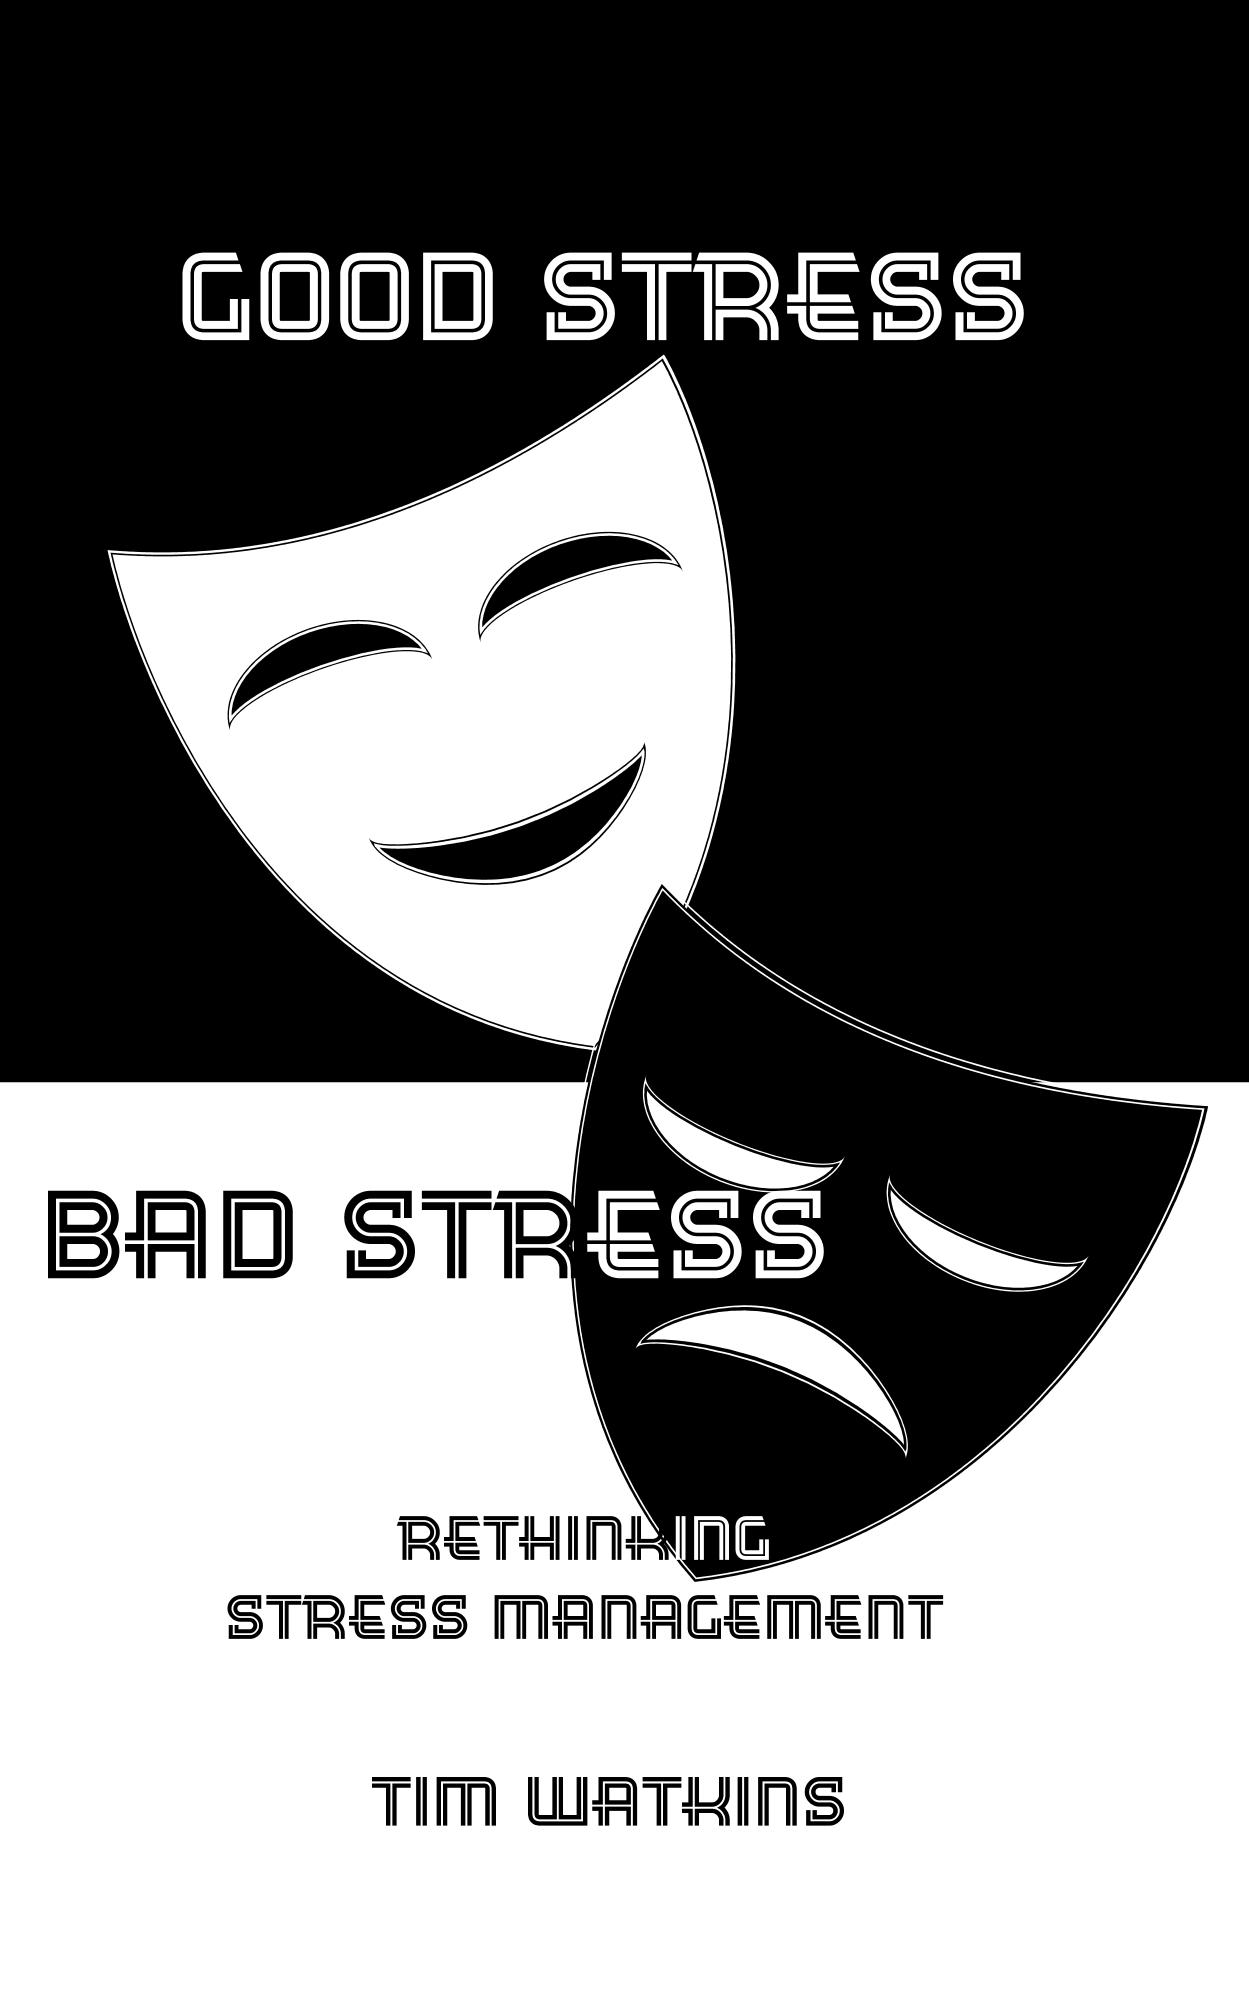 Good Stress, Bad Stress